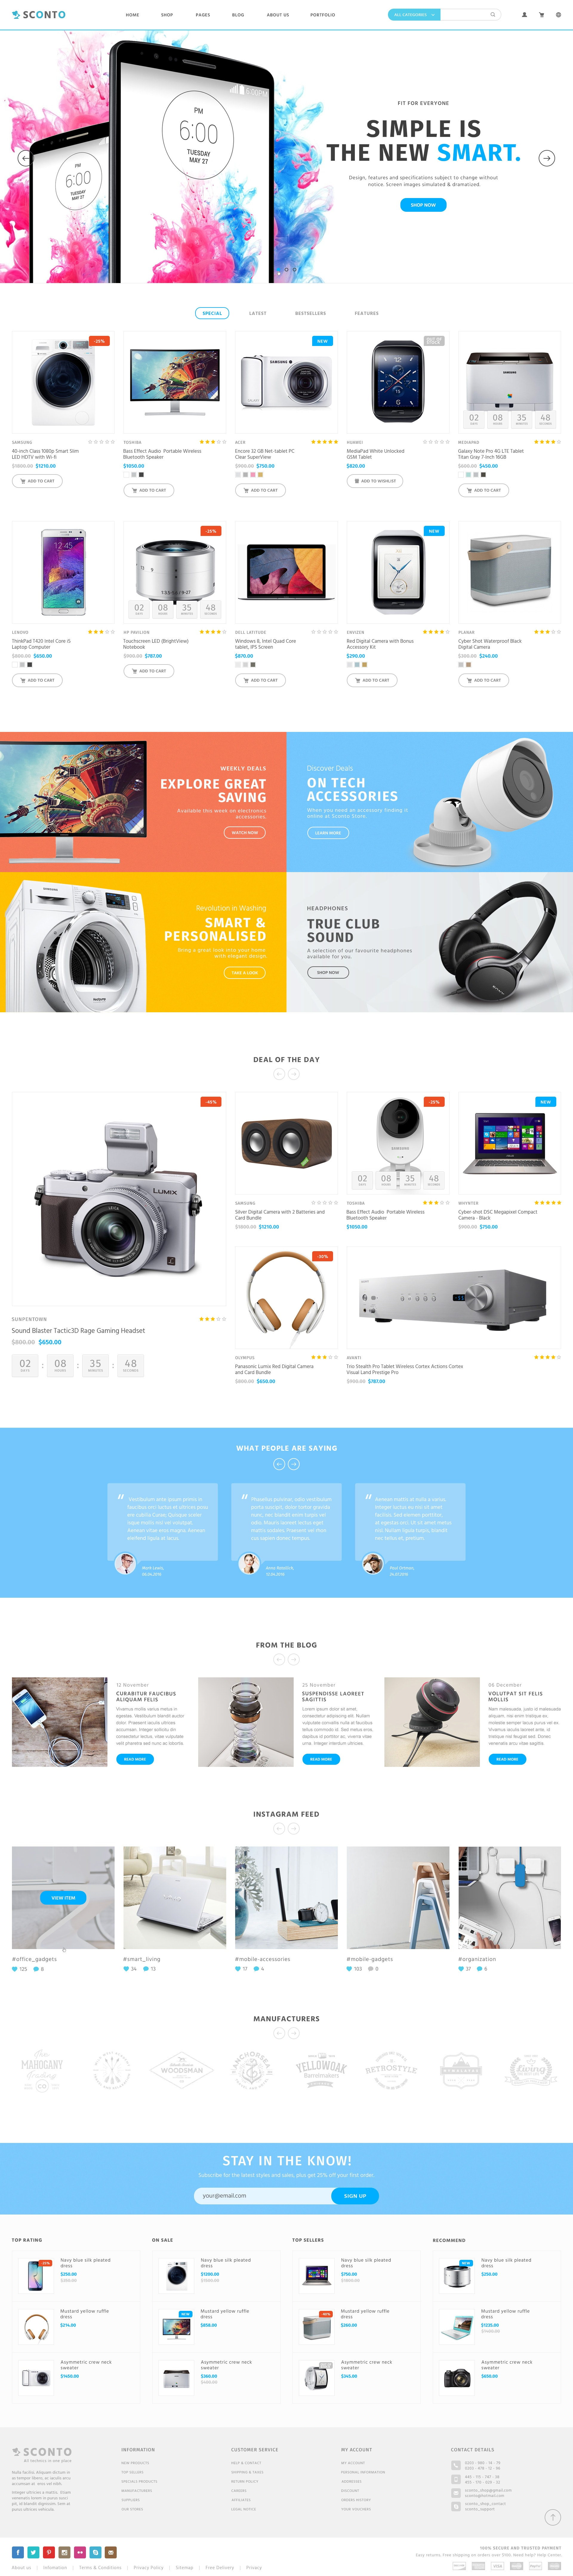 396cccafce1 Sconto - Responsive eCommerce PSD Template by MarekMnishek